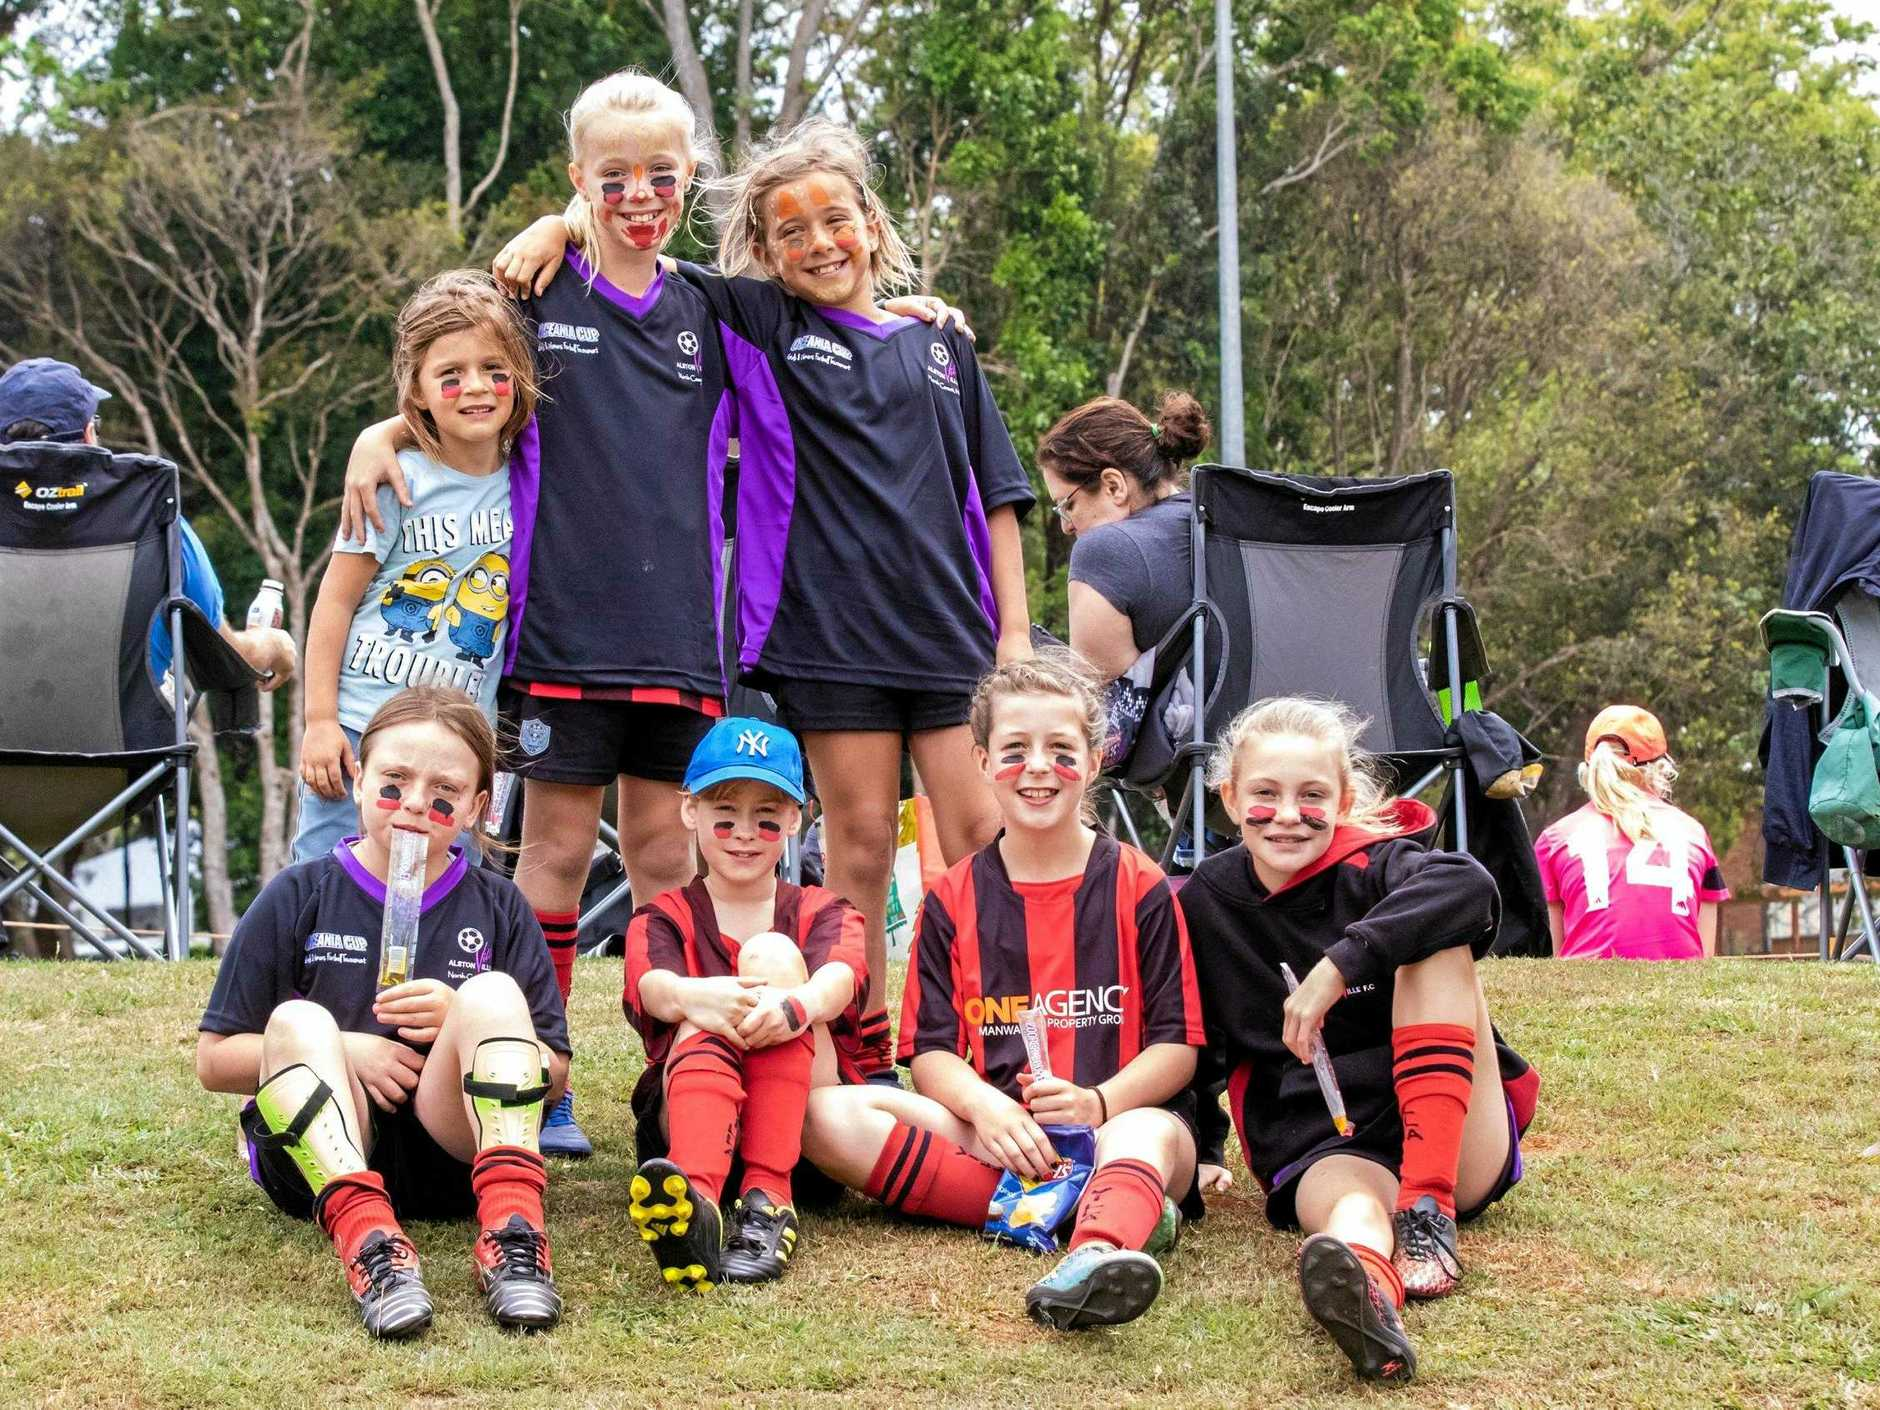 Villa Leopards 12s at the Oceanic Cup at Alstonville on Sunday.Zadie Zubani, Lilly Brucke, Ziggy Zubani, Heidi Hume, Nesli Adams, Sophia Southwell, Camryn Anderson, and Izzy Slater.